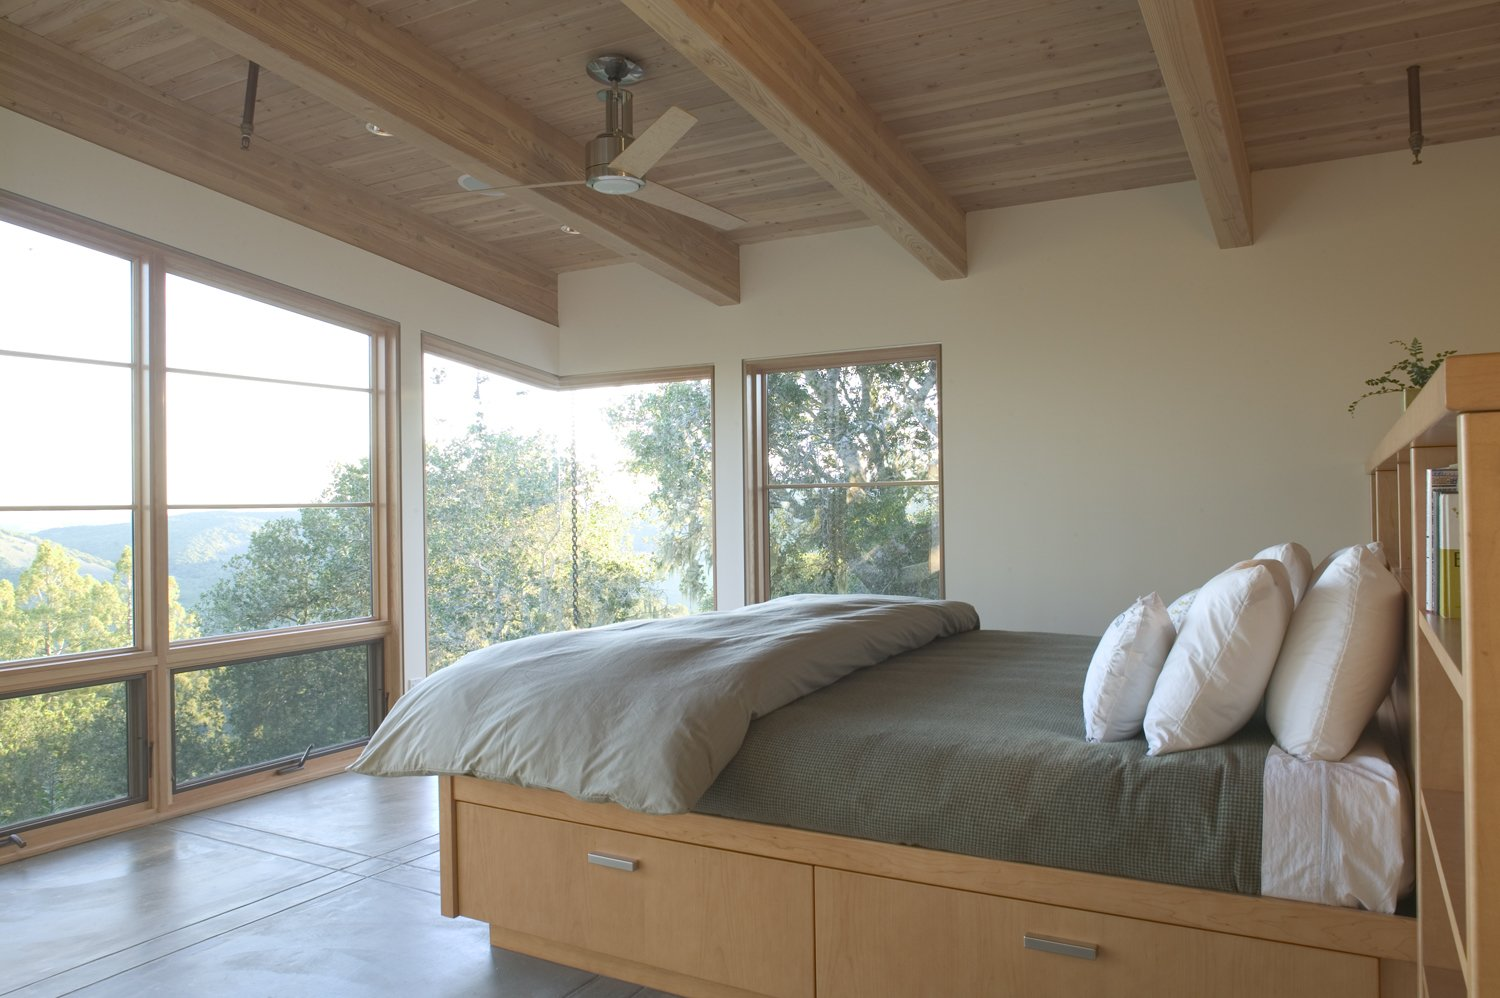 Bedroom, Storage, Bookcase, Ceiling, and Bed House Ocho  Best Bedroom Storage Bookcase Ceiling Photos from House Ocho